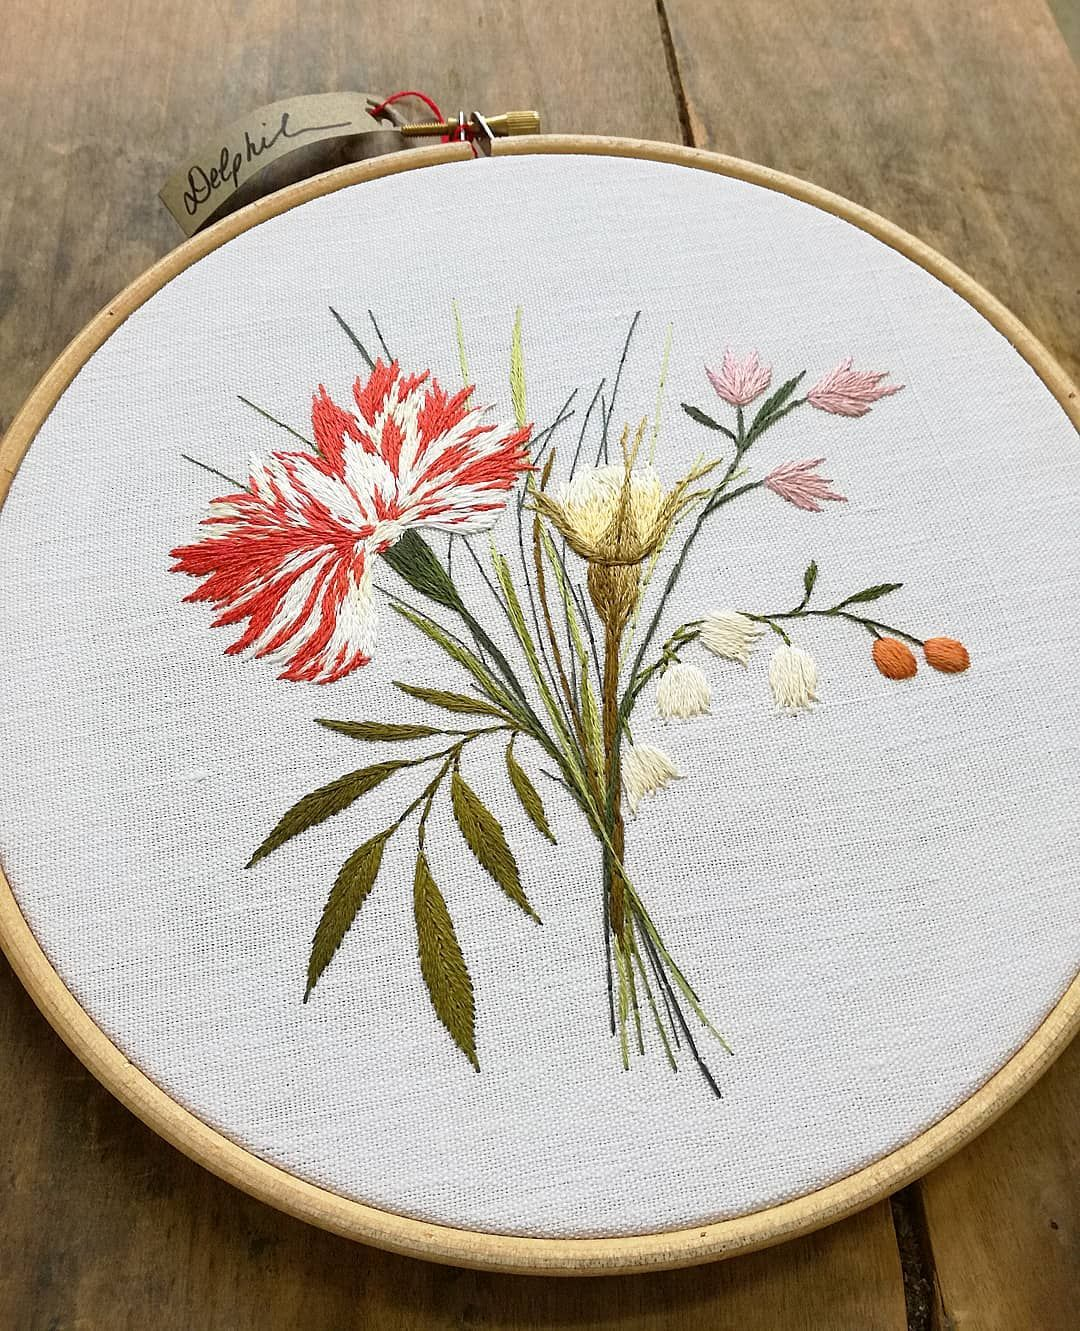 So skillful bouquet floral embroidery pinterest embroidery